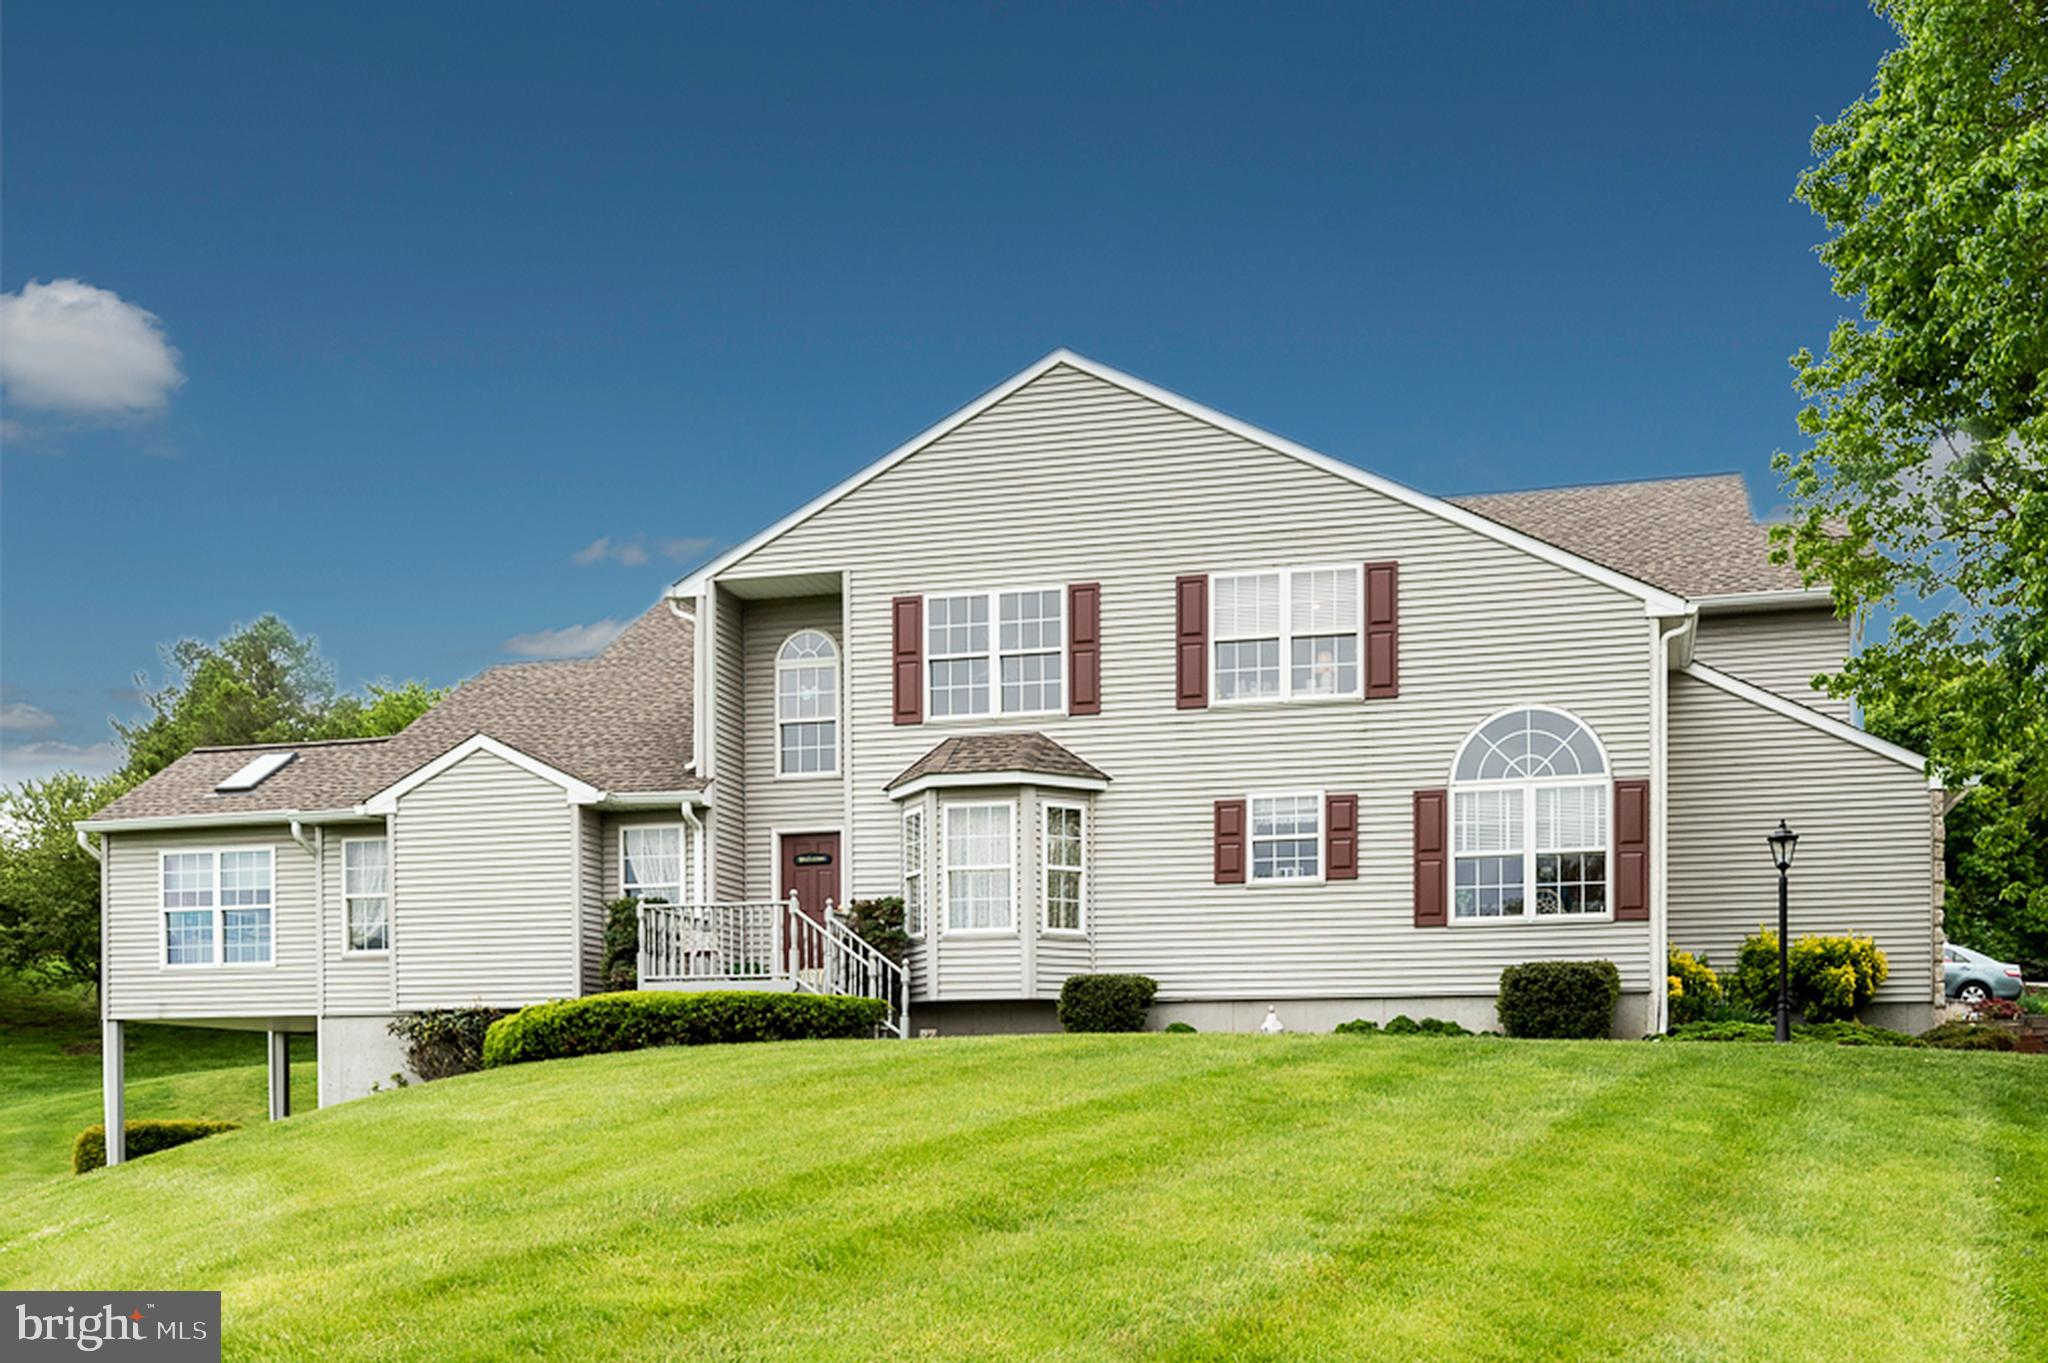 924 Adams Way, West Chester, PA 19382 now has a new price of $424,900!